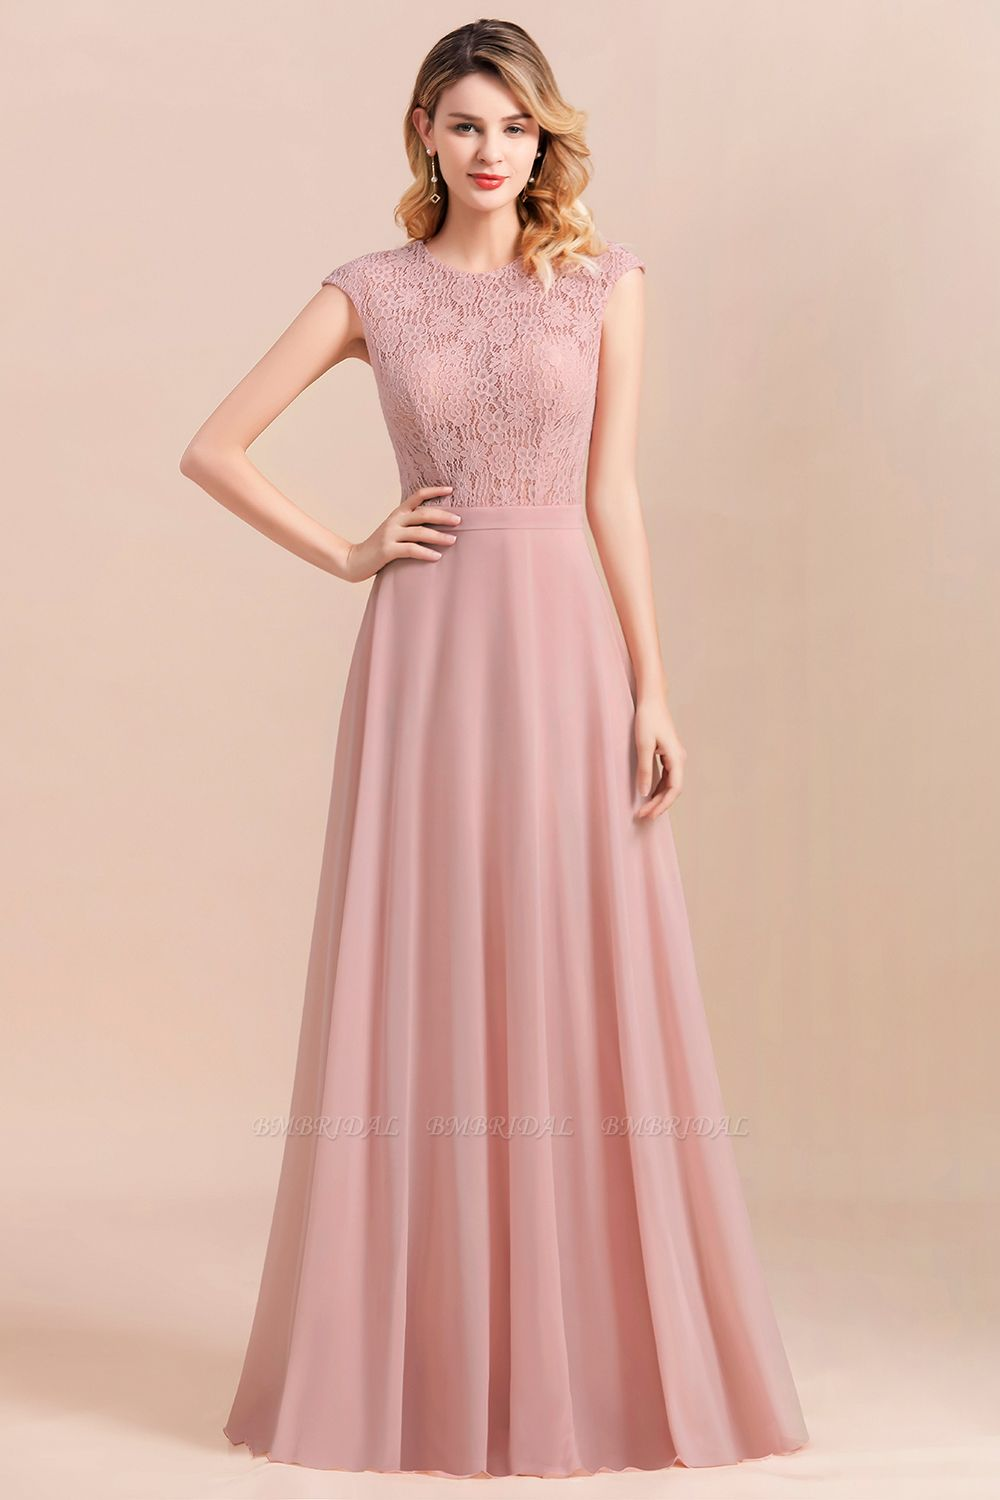 Elegant A-Line Sleeveless Dusty Rose Lace Bridesmaid Dress Online